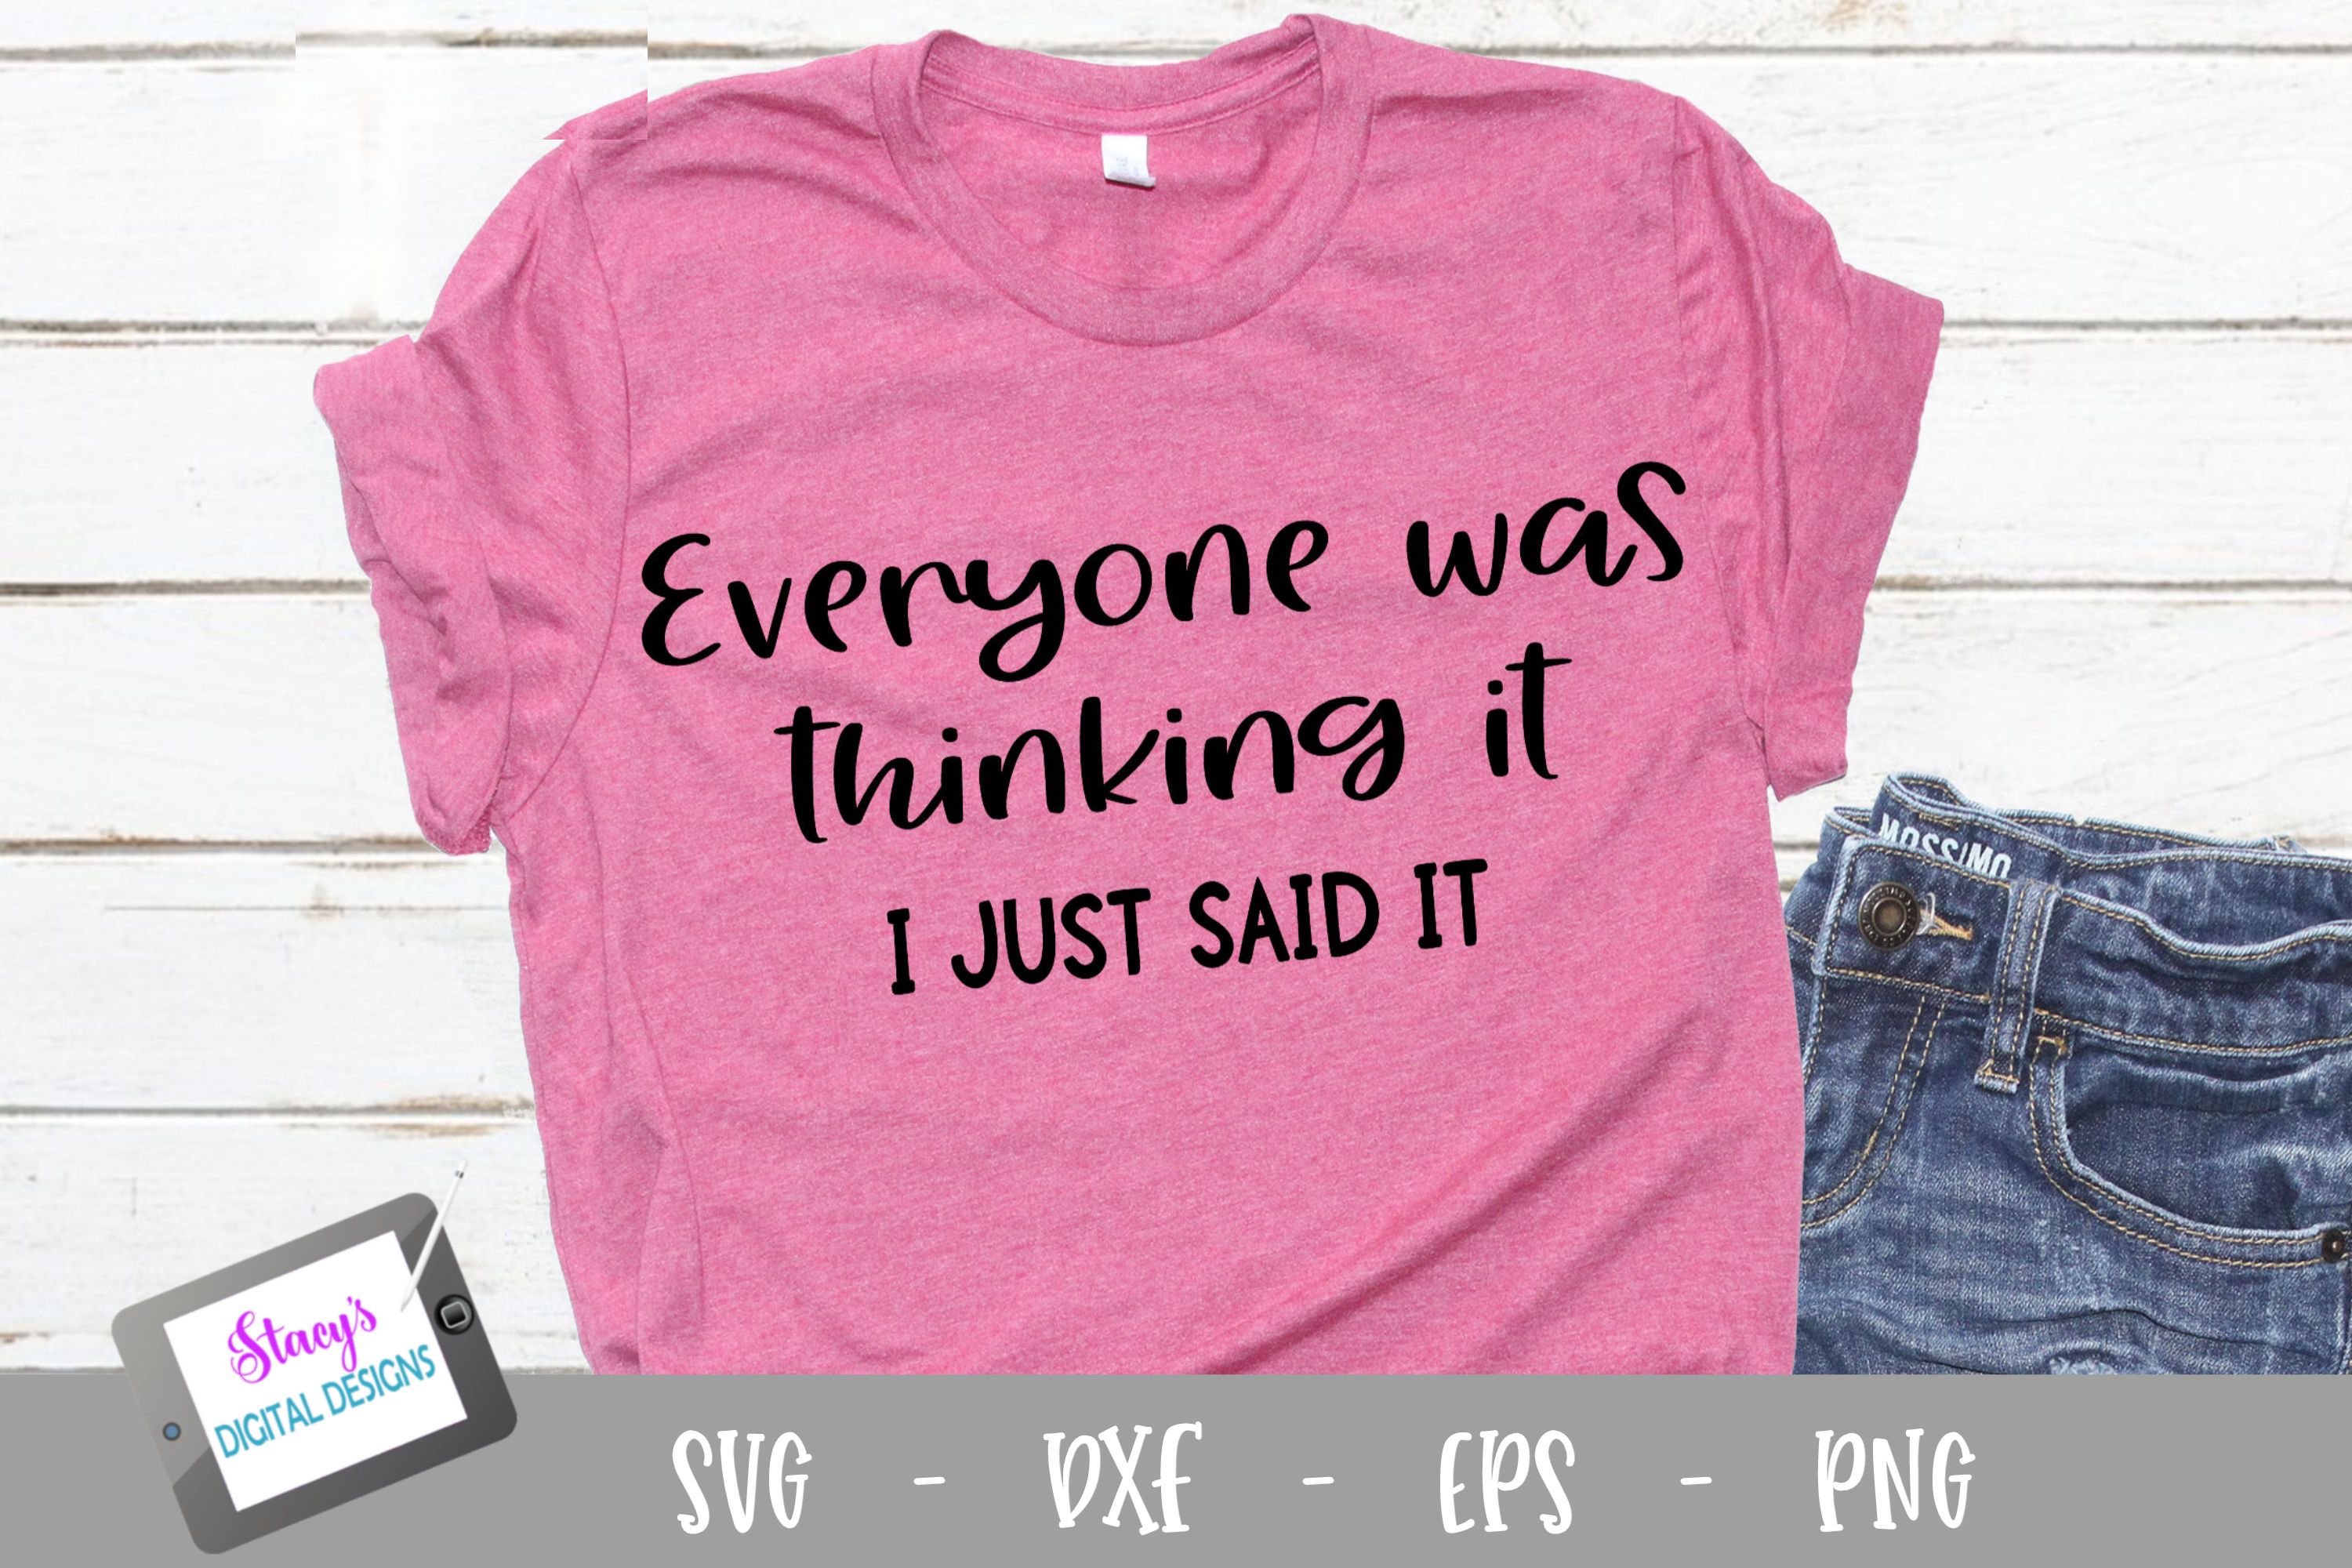 Funny Quotes Bundle Vol. 3 - 6 funny SVG Quotes example image 5